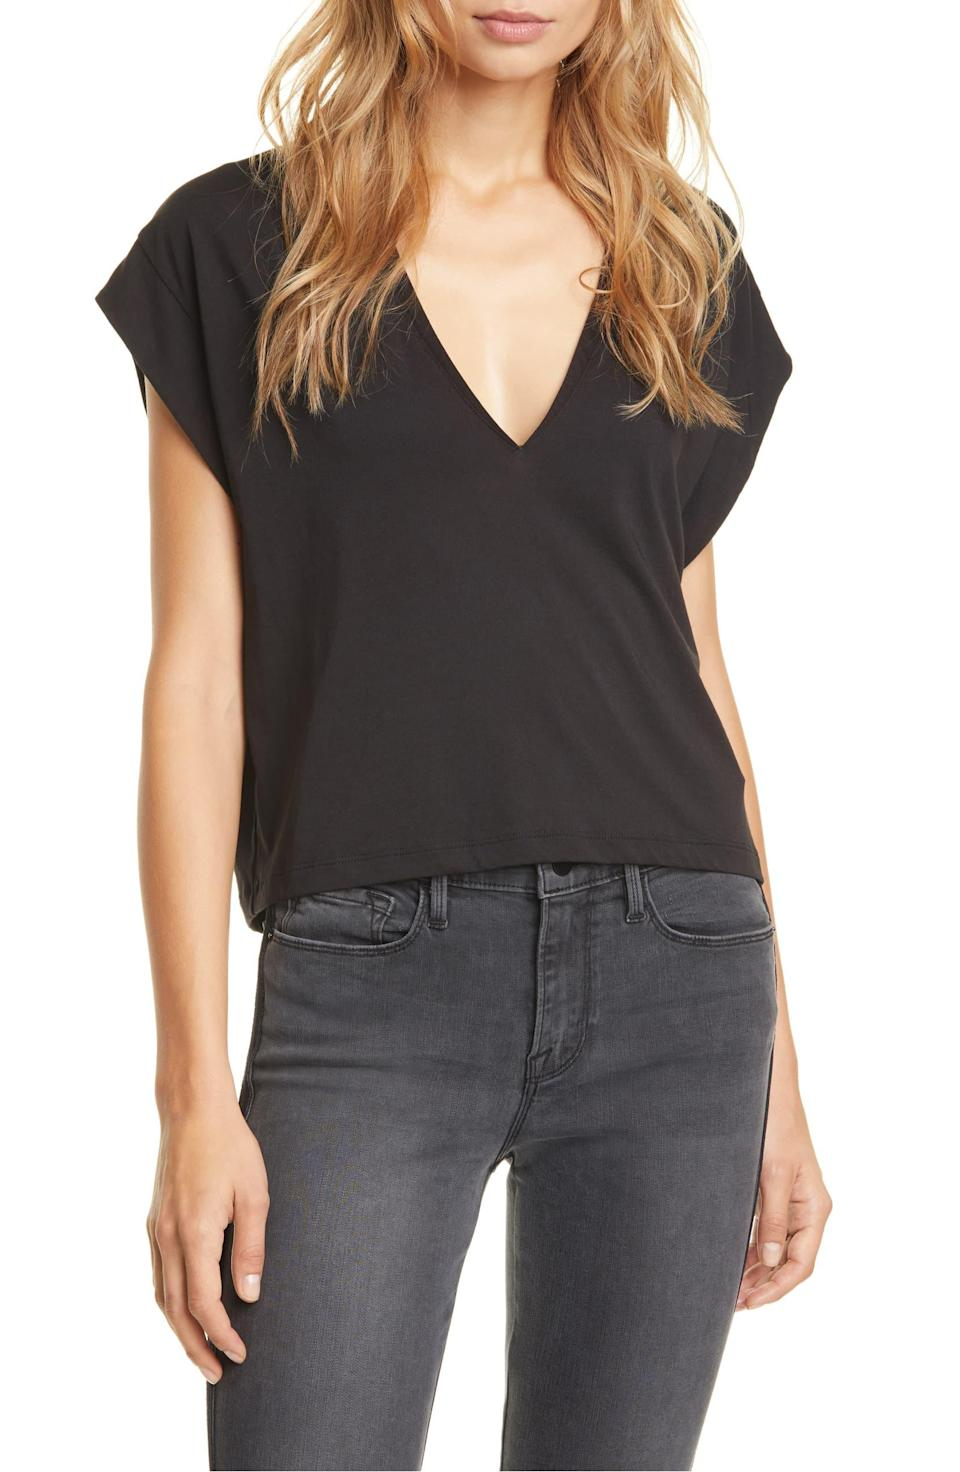 "We'll call this cutie ""purposefully disheveled."" $85, Nordstrom. <a href=""https://shop.nordstrom.com/s/frame-le-mid-rise-v-neck-tee/5351679"" rel=""nofollow noopener"" target=""_blank"" data-ylk=""slk:Get it now!"" class=""link rapid-noclick-resp"">Get it now!</a>"